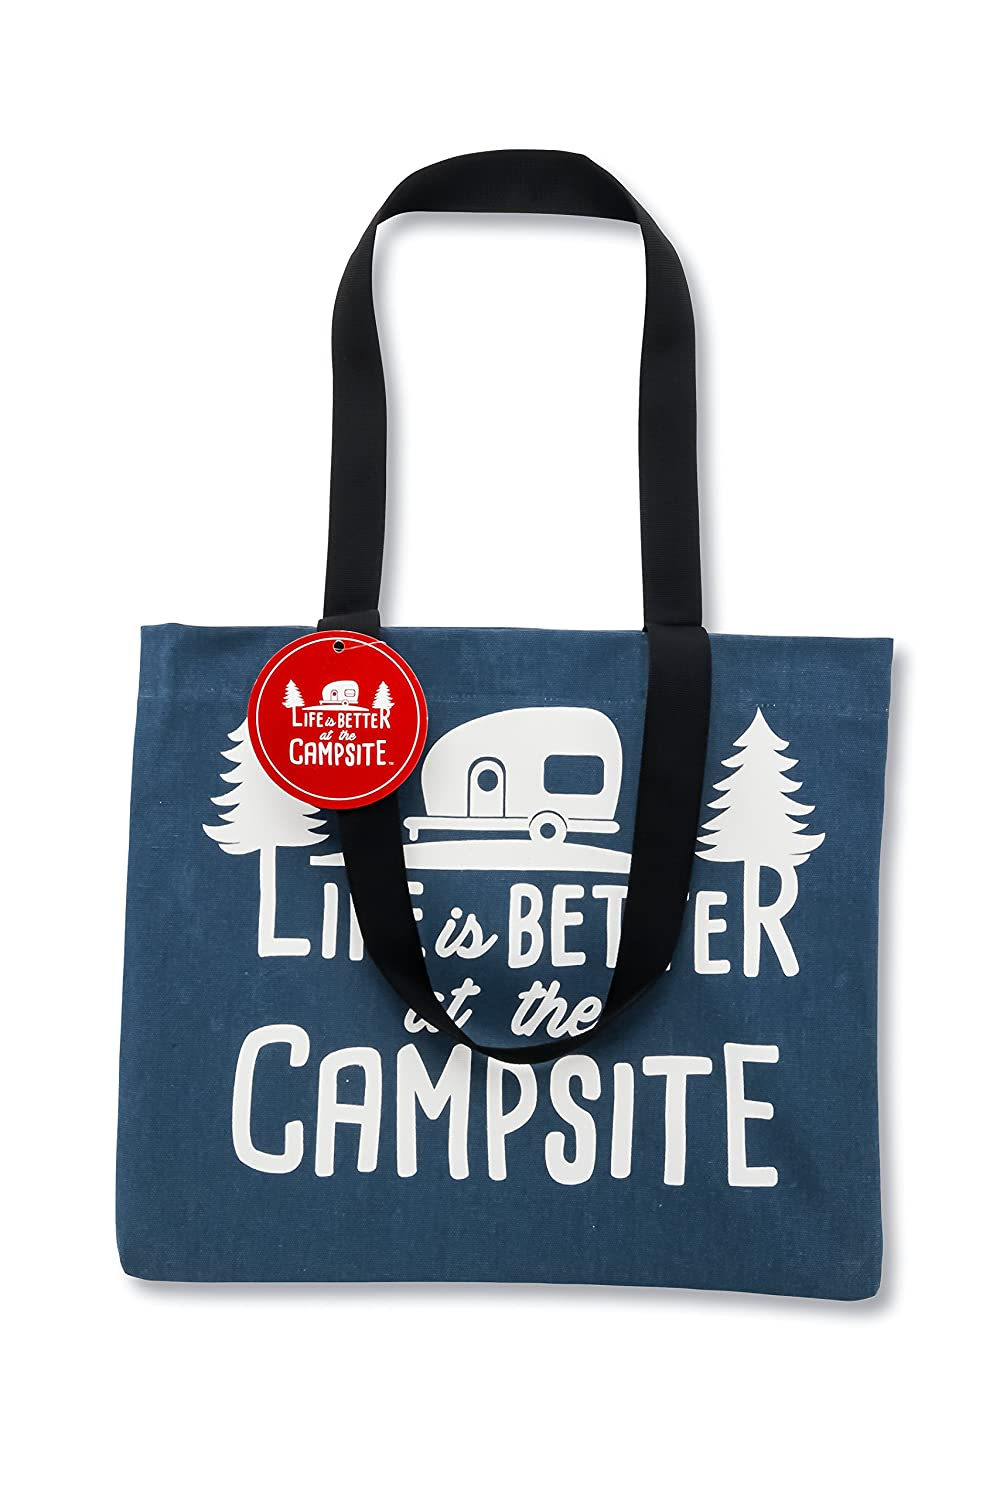 Camco Life Is Better At TheもOKキャンバストートバッグwith Magnetic Closure – Perfect As A Reusable Grocery Bag、ビーチバッグ、およびその他メーカーRV印刷デザイン(53203 B07C8XWSXM